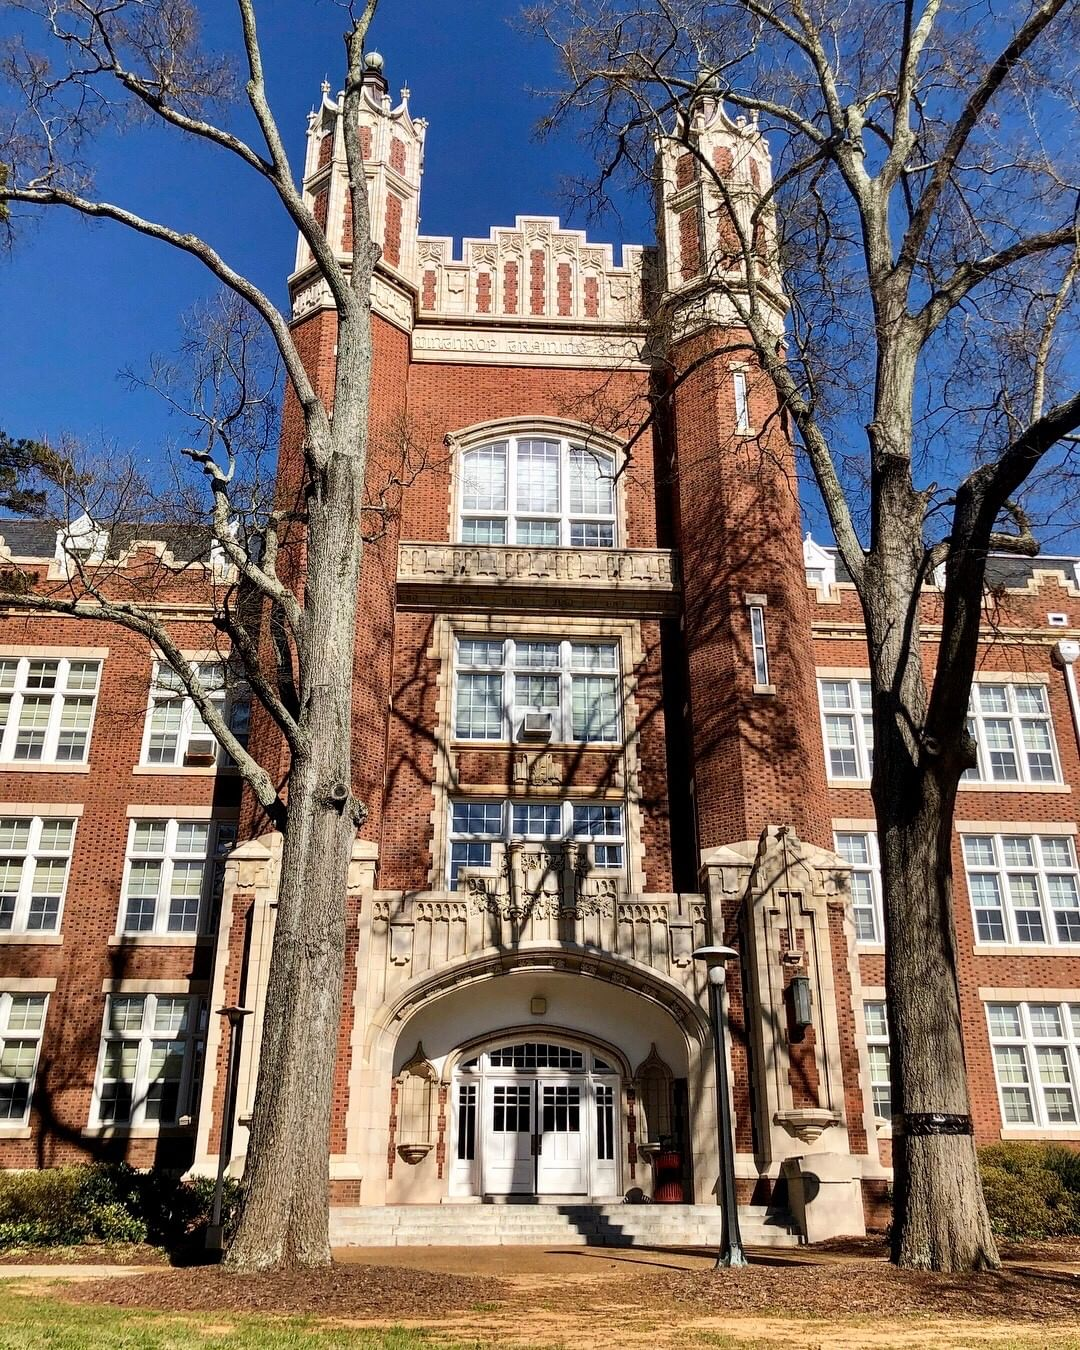 The Withers Building was built in 1891 and remodeled in 1912-1913. The Winthrop Training School (as listed on the building) in Rock Hill, SC, is a public university founded in 1886